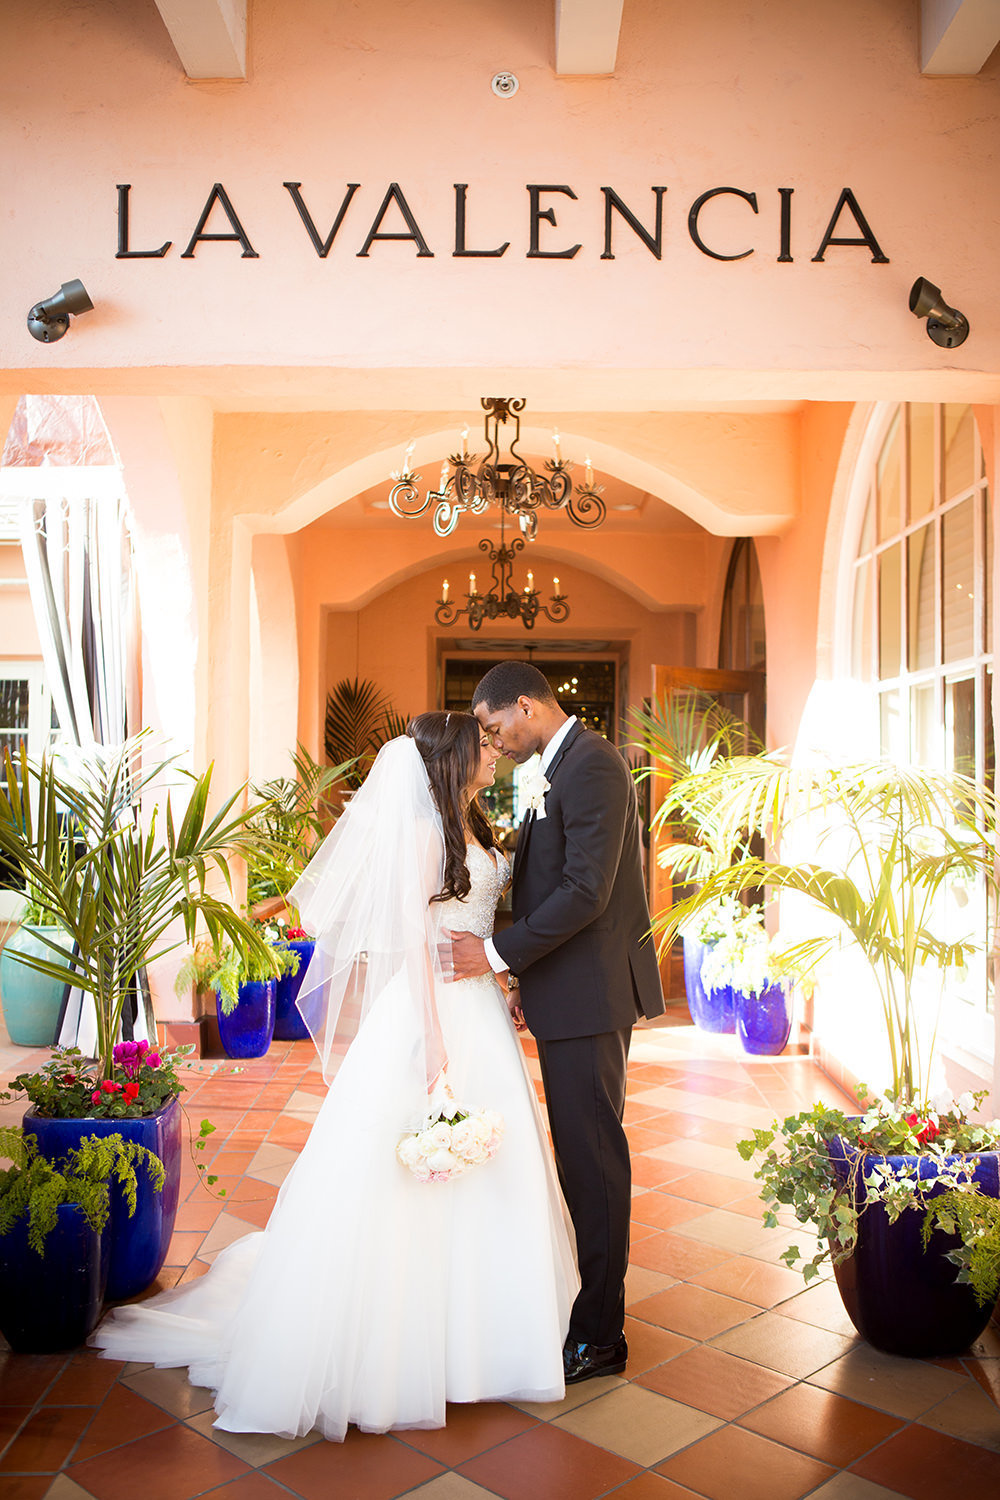 Classic wedding portrait at La Valencia